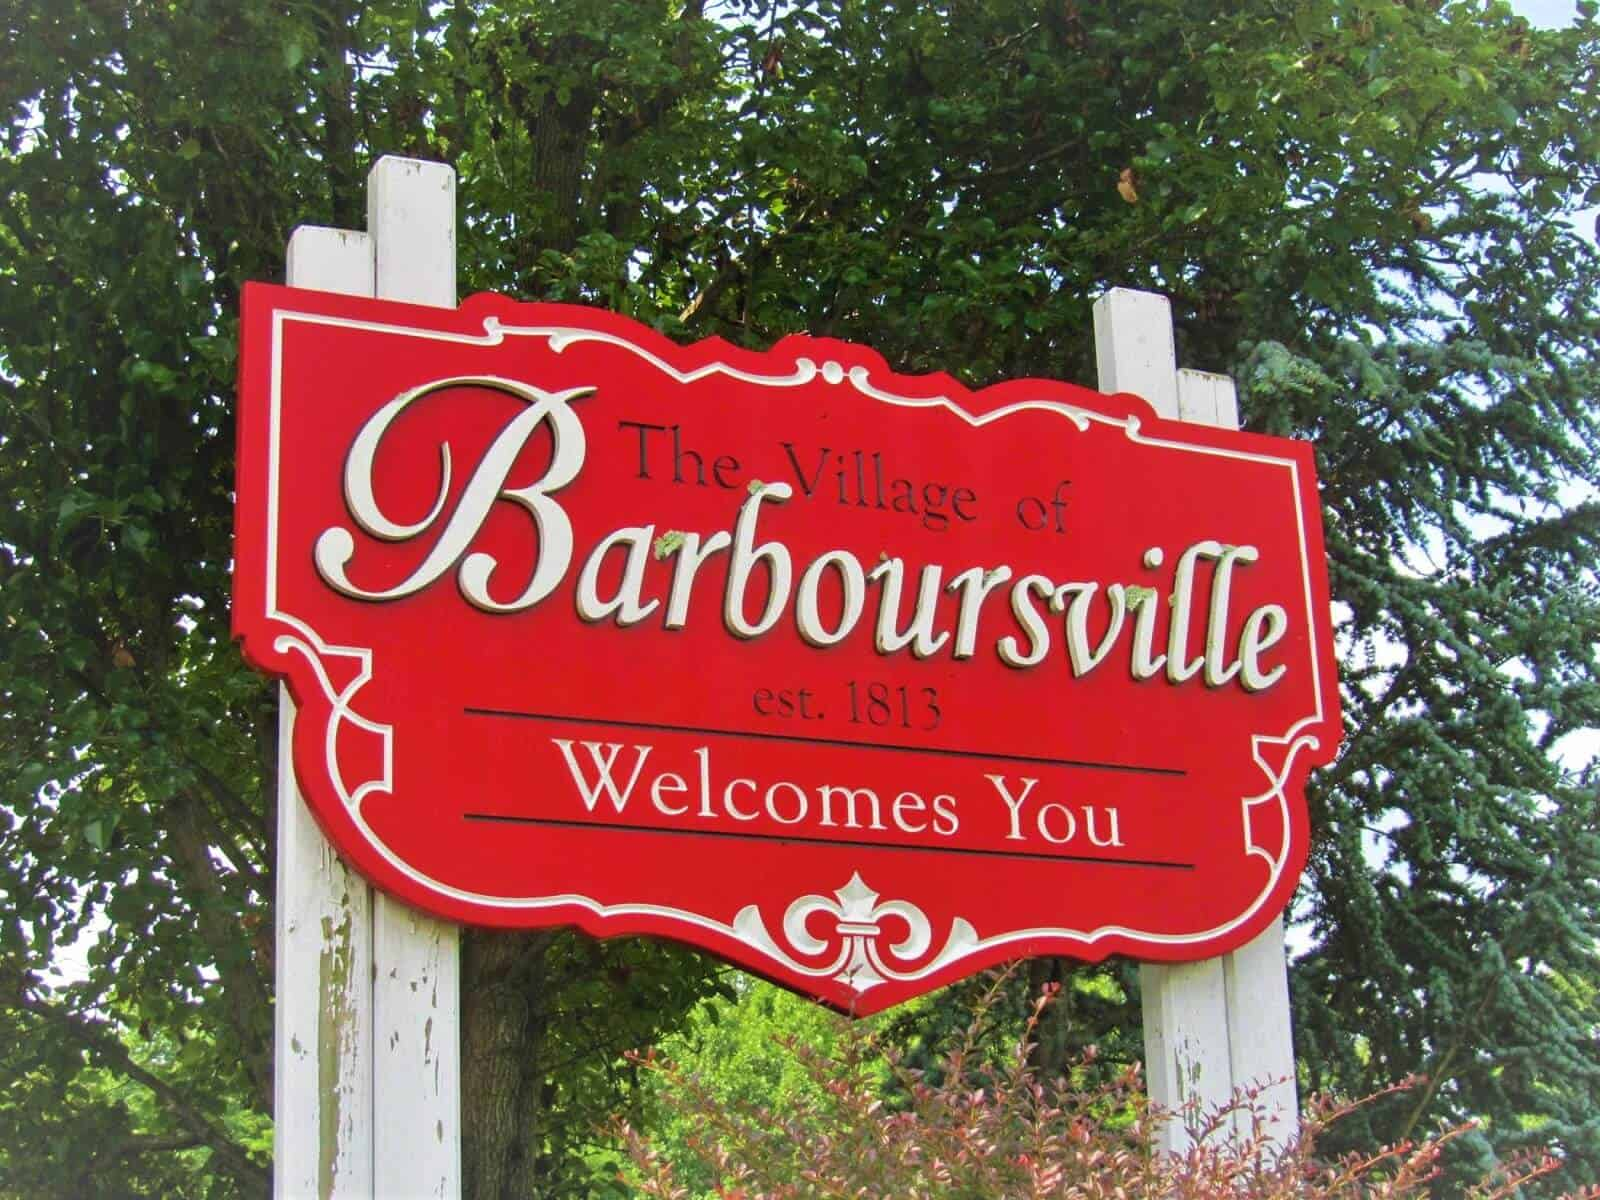 First response restoration locations barboursville